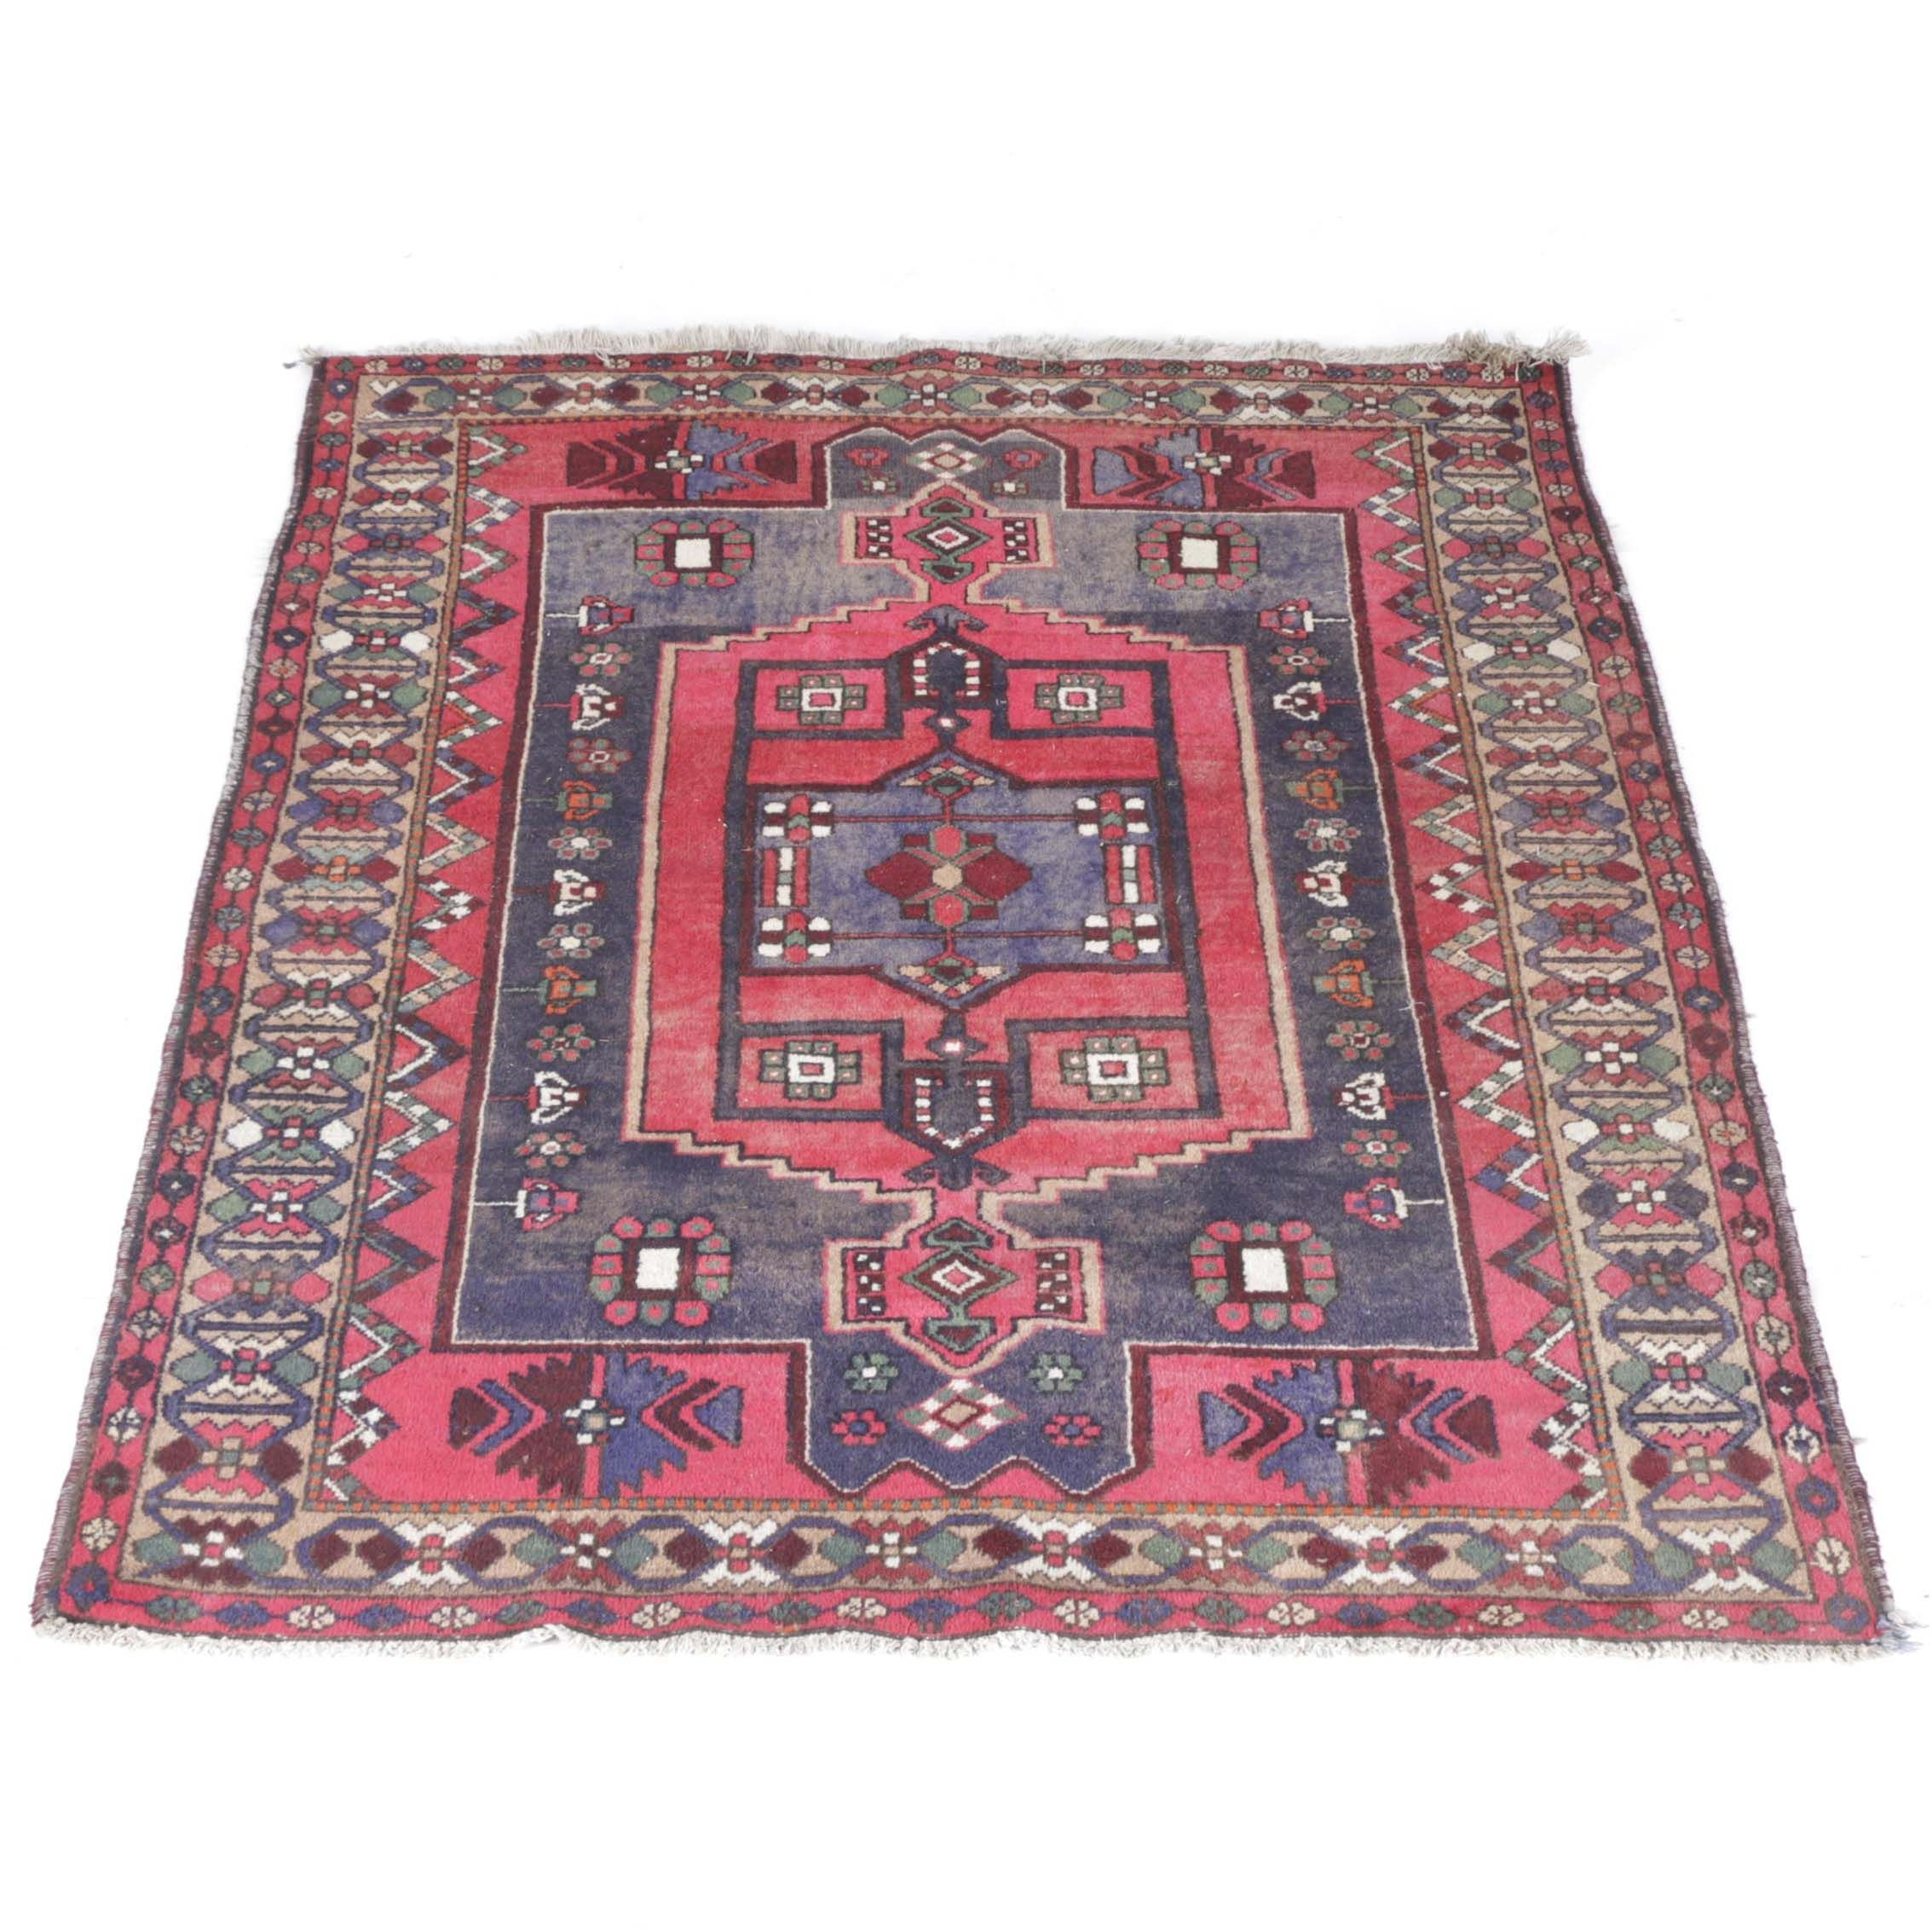 Hand-Knotted Armenian Karabagh Wool Area Rug